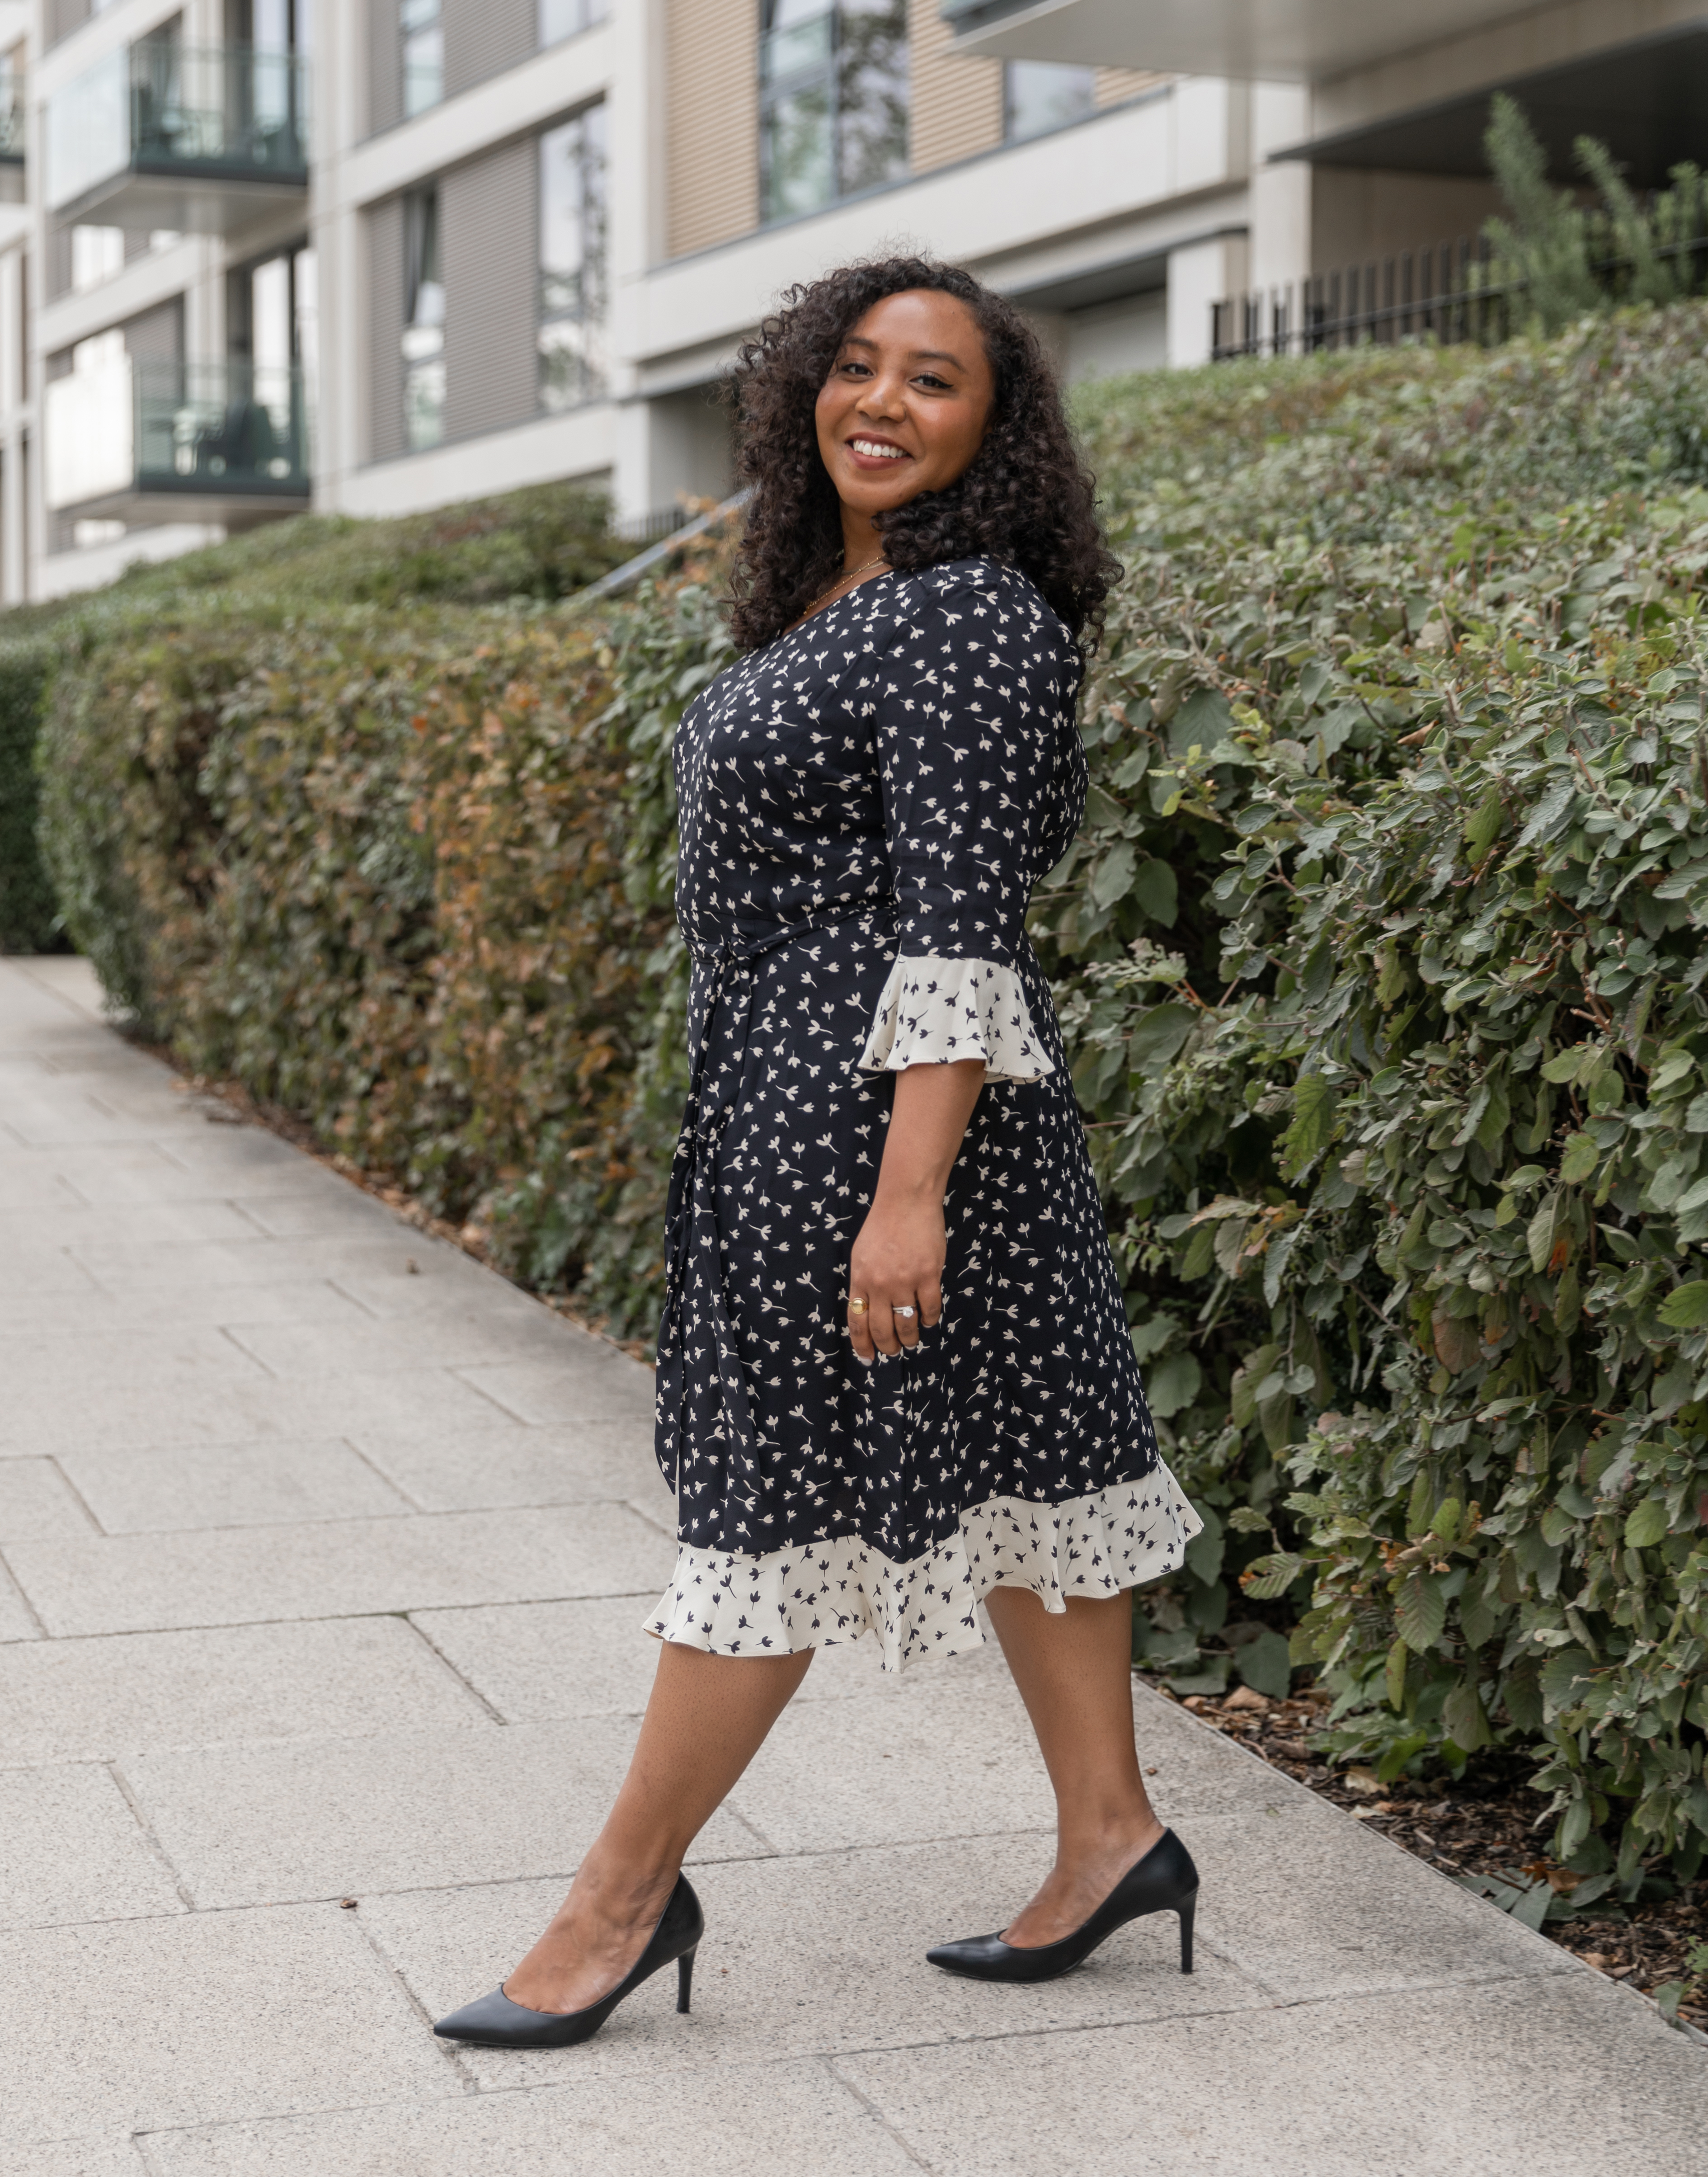 two classic Laura Ashley looks for Autumn